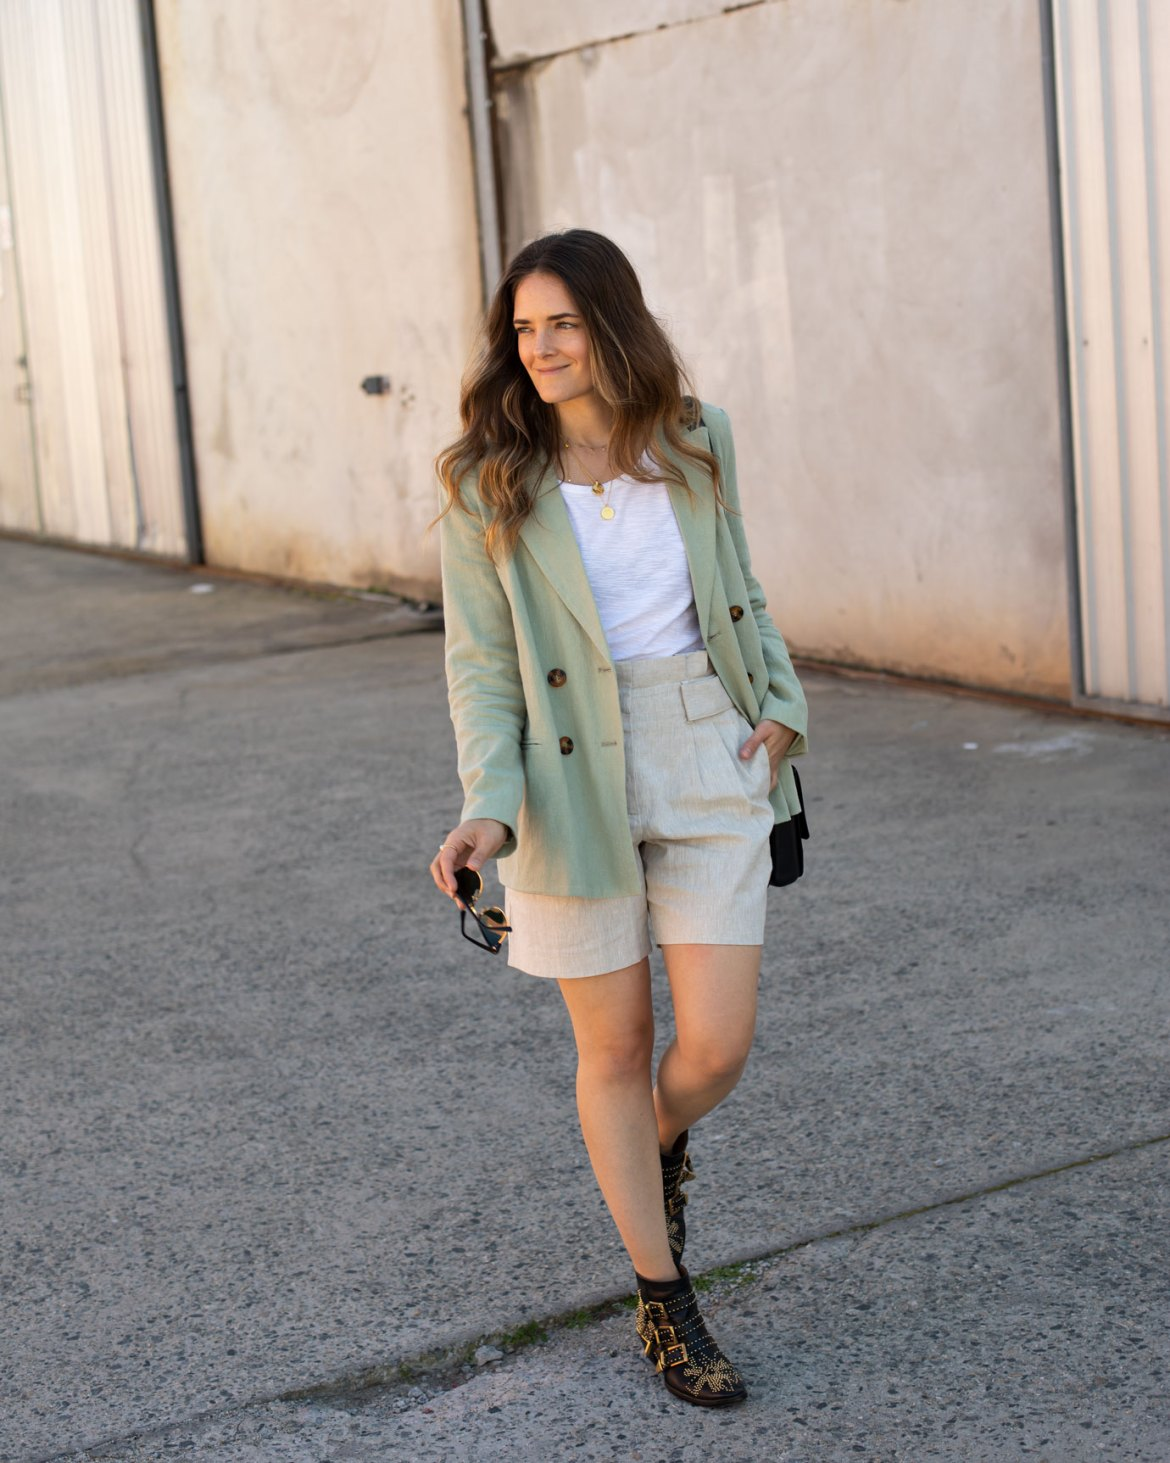 casual neutral linen look with boots article on how I learned to shop less for clothing and appreciate what I have more